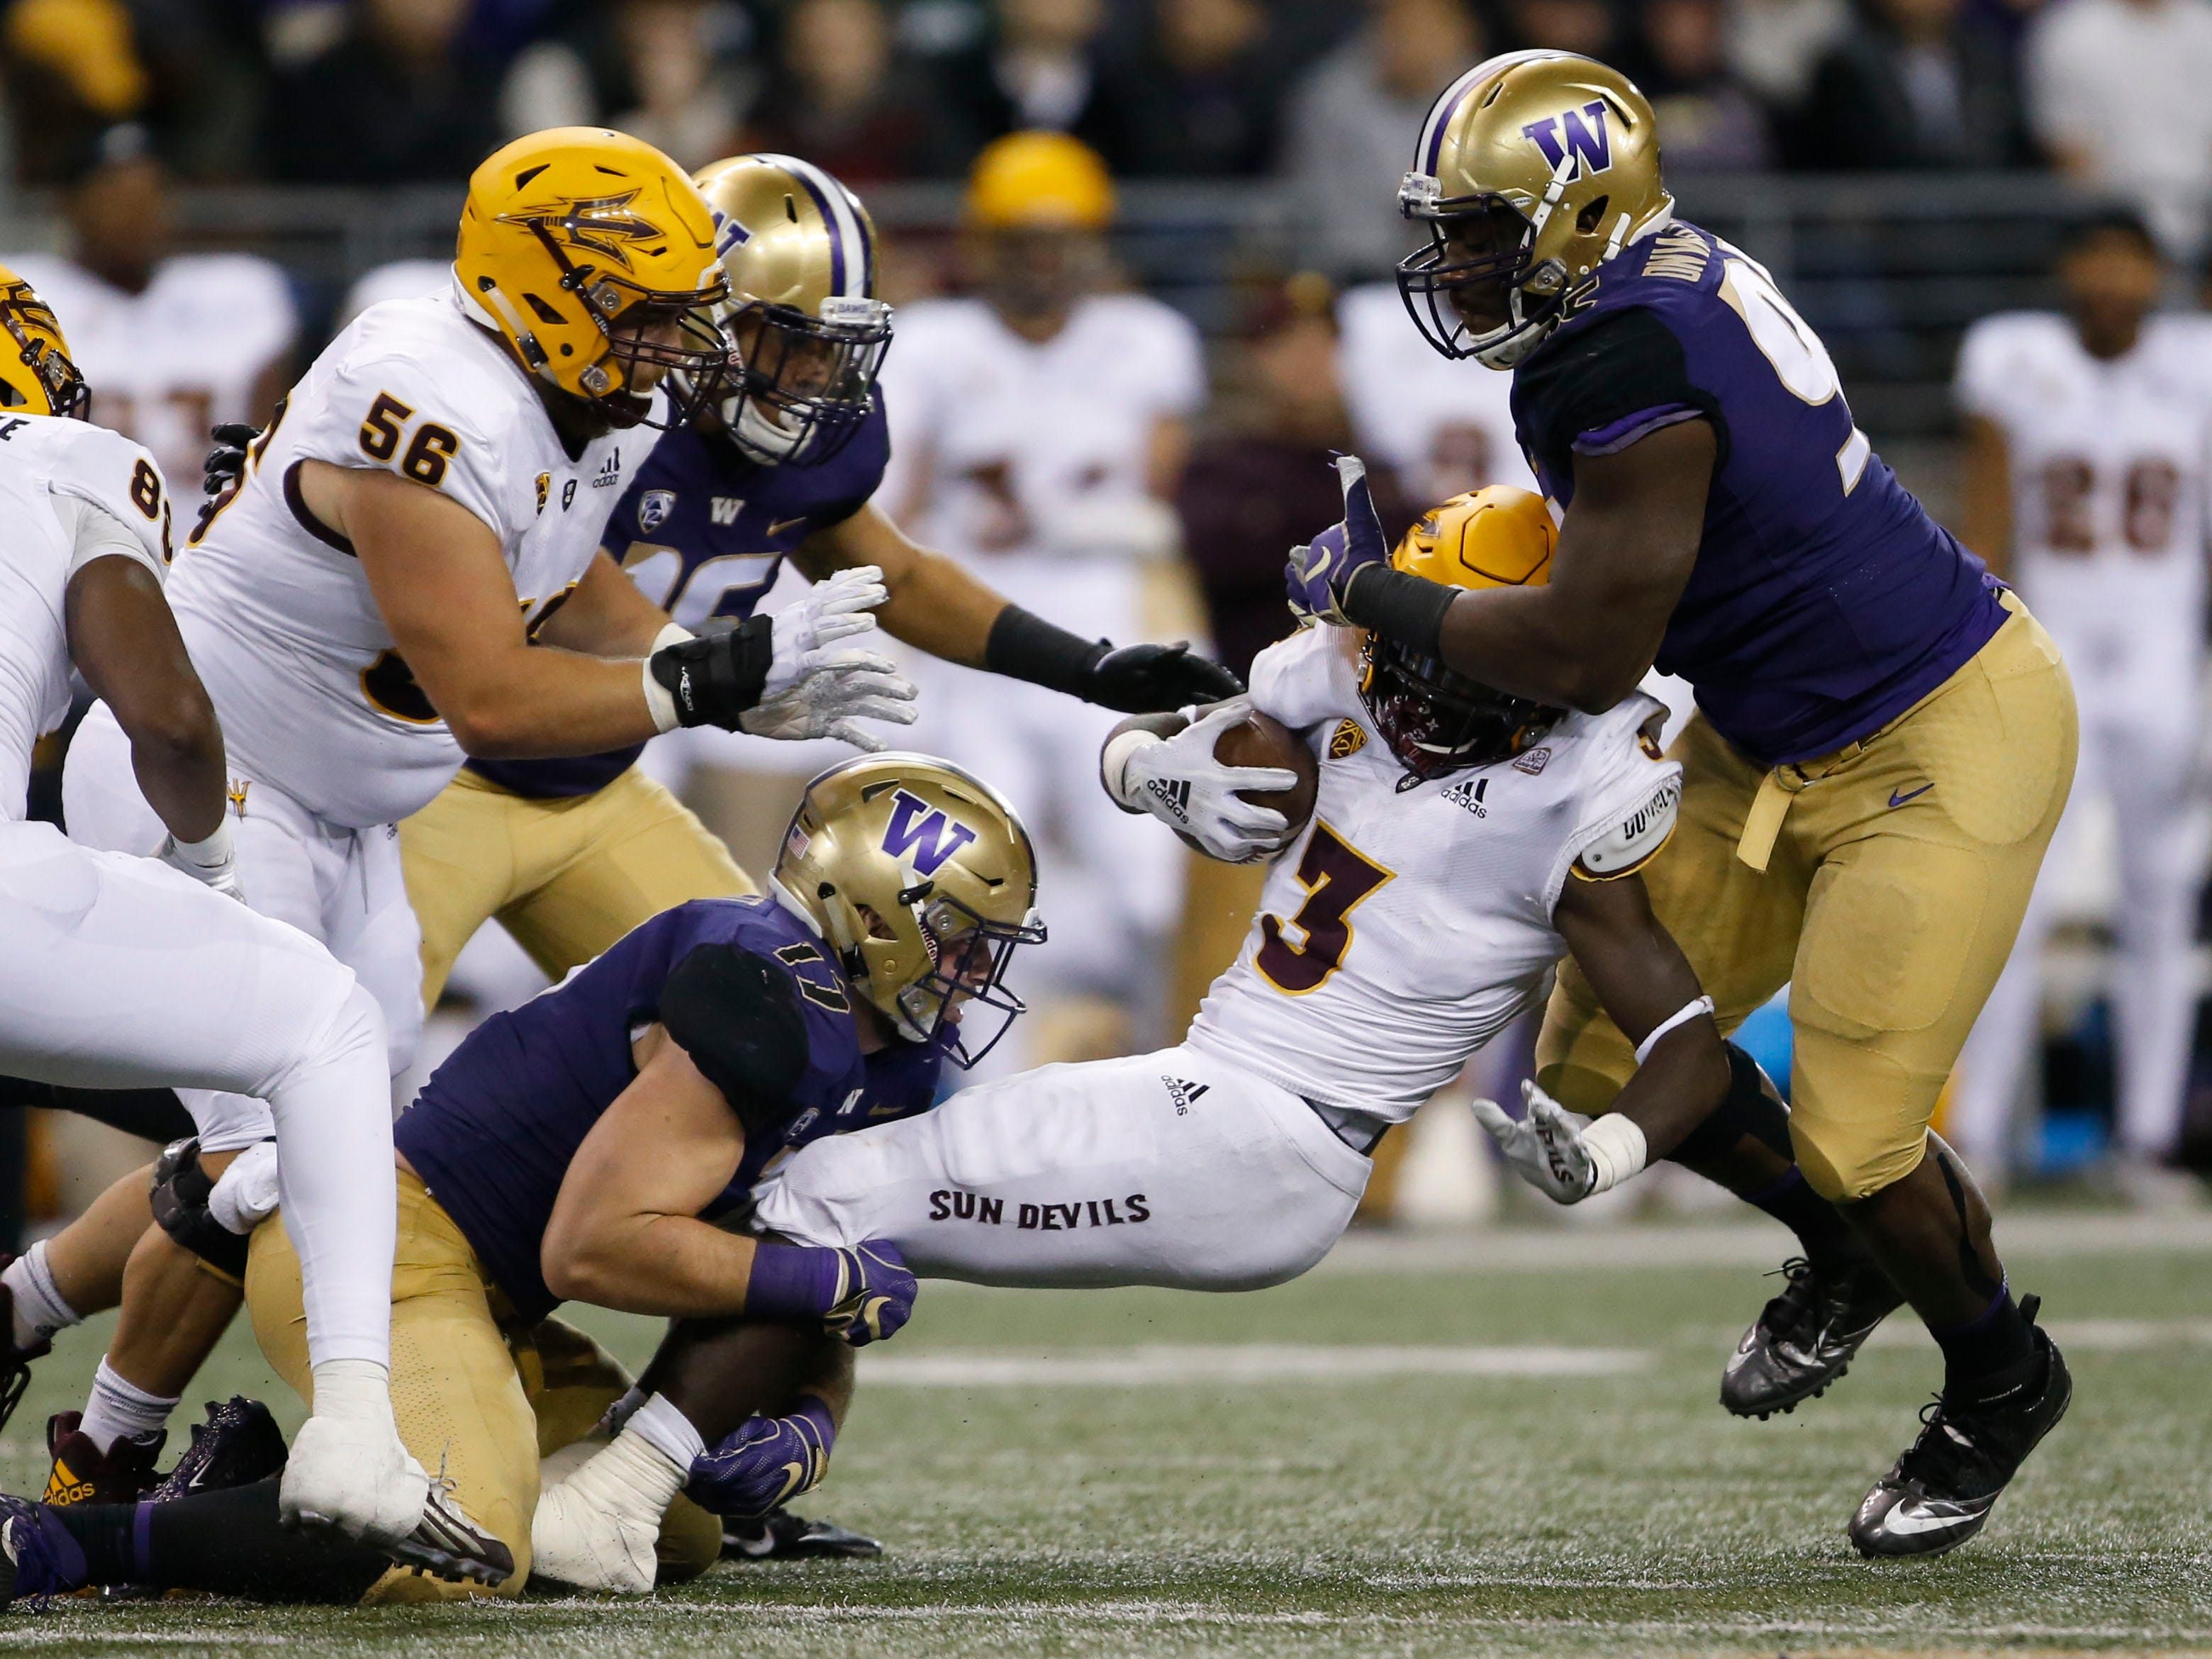 Sep 22, 2018; Seattle, WA, USA; Arizona State Sun Devils running back Eno Benjamin (3) gets tackled by Washington Huskies linebacker Tevis Bartlett (17) and defensive lineman Levi Onwuzurike (95) during the third quarter at Husky Stadium.